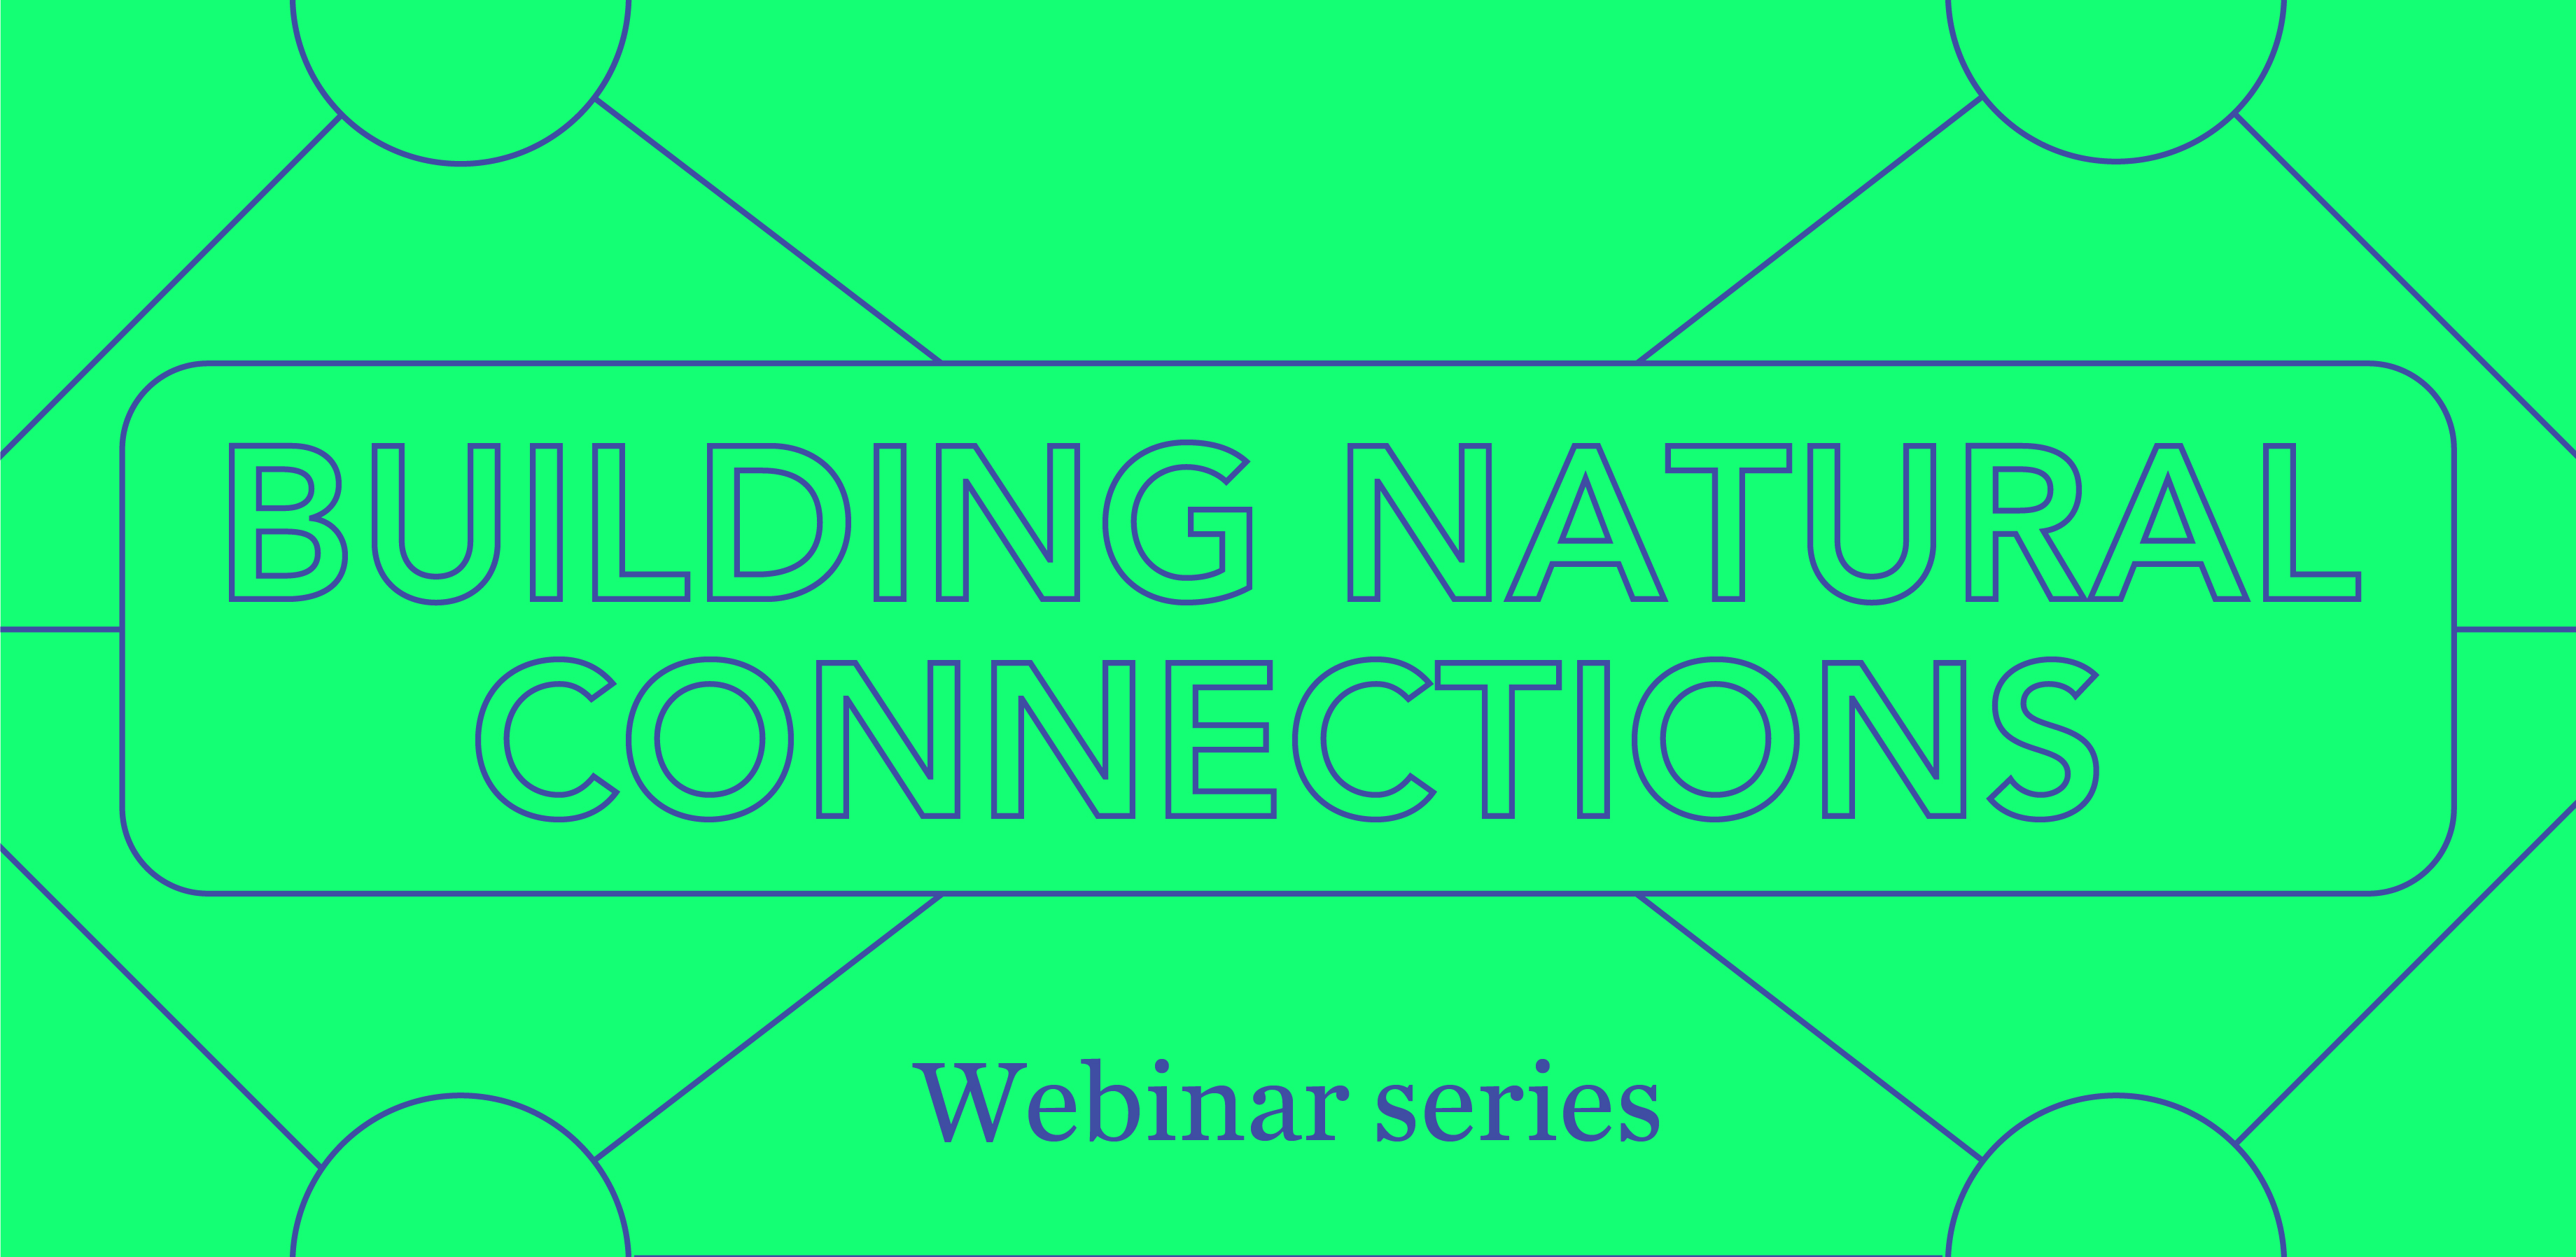 Building natural connections